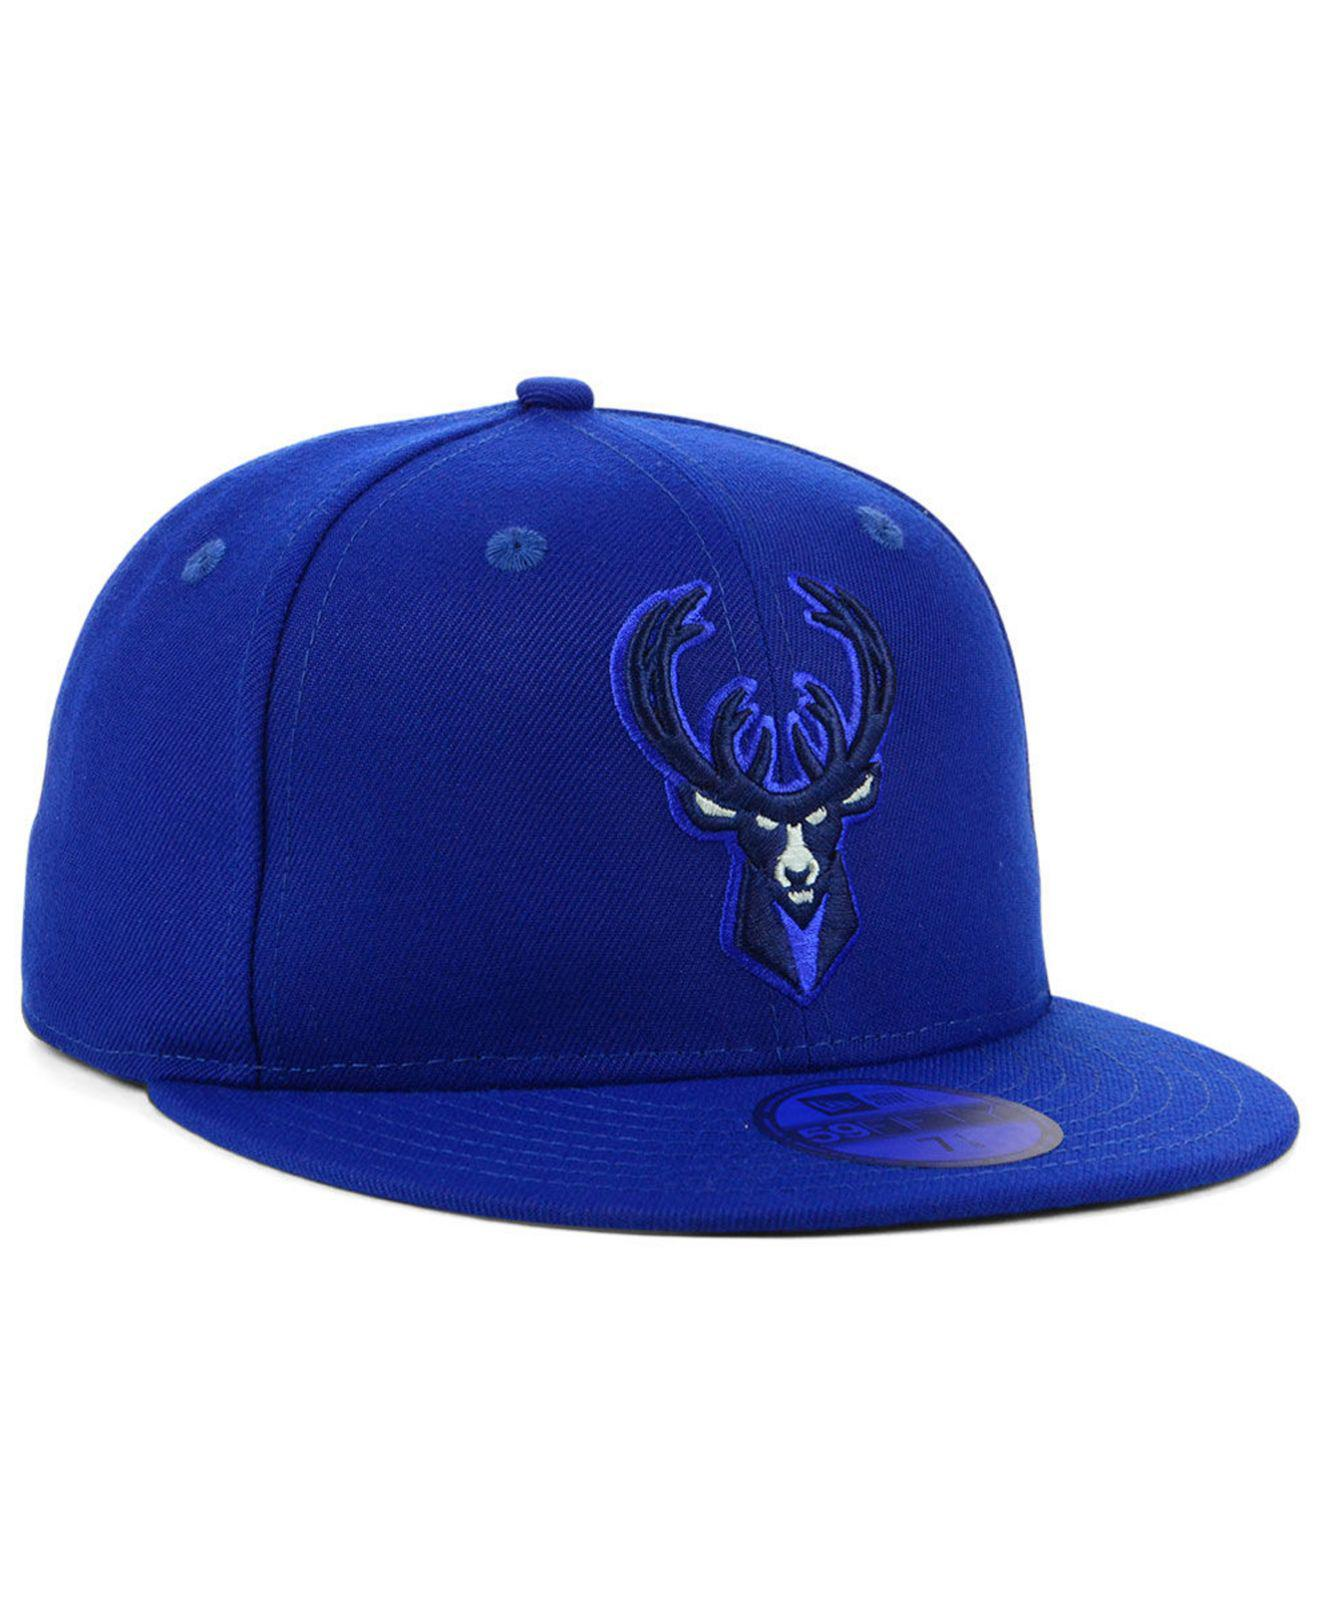 finest selection e5f4f 236d1 ... where can i buy milwaukee bucks color prism pack 59fifty fitted cap for men  lyst.